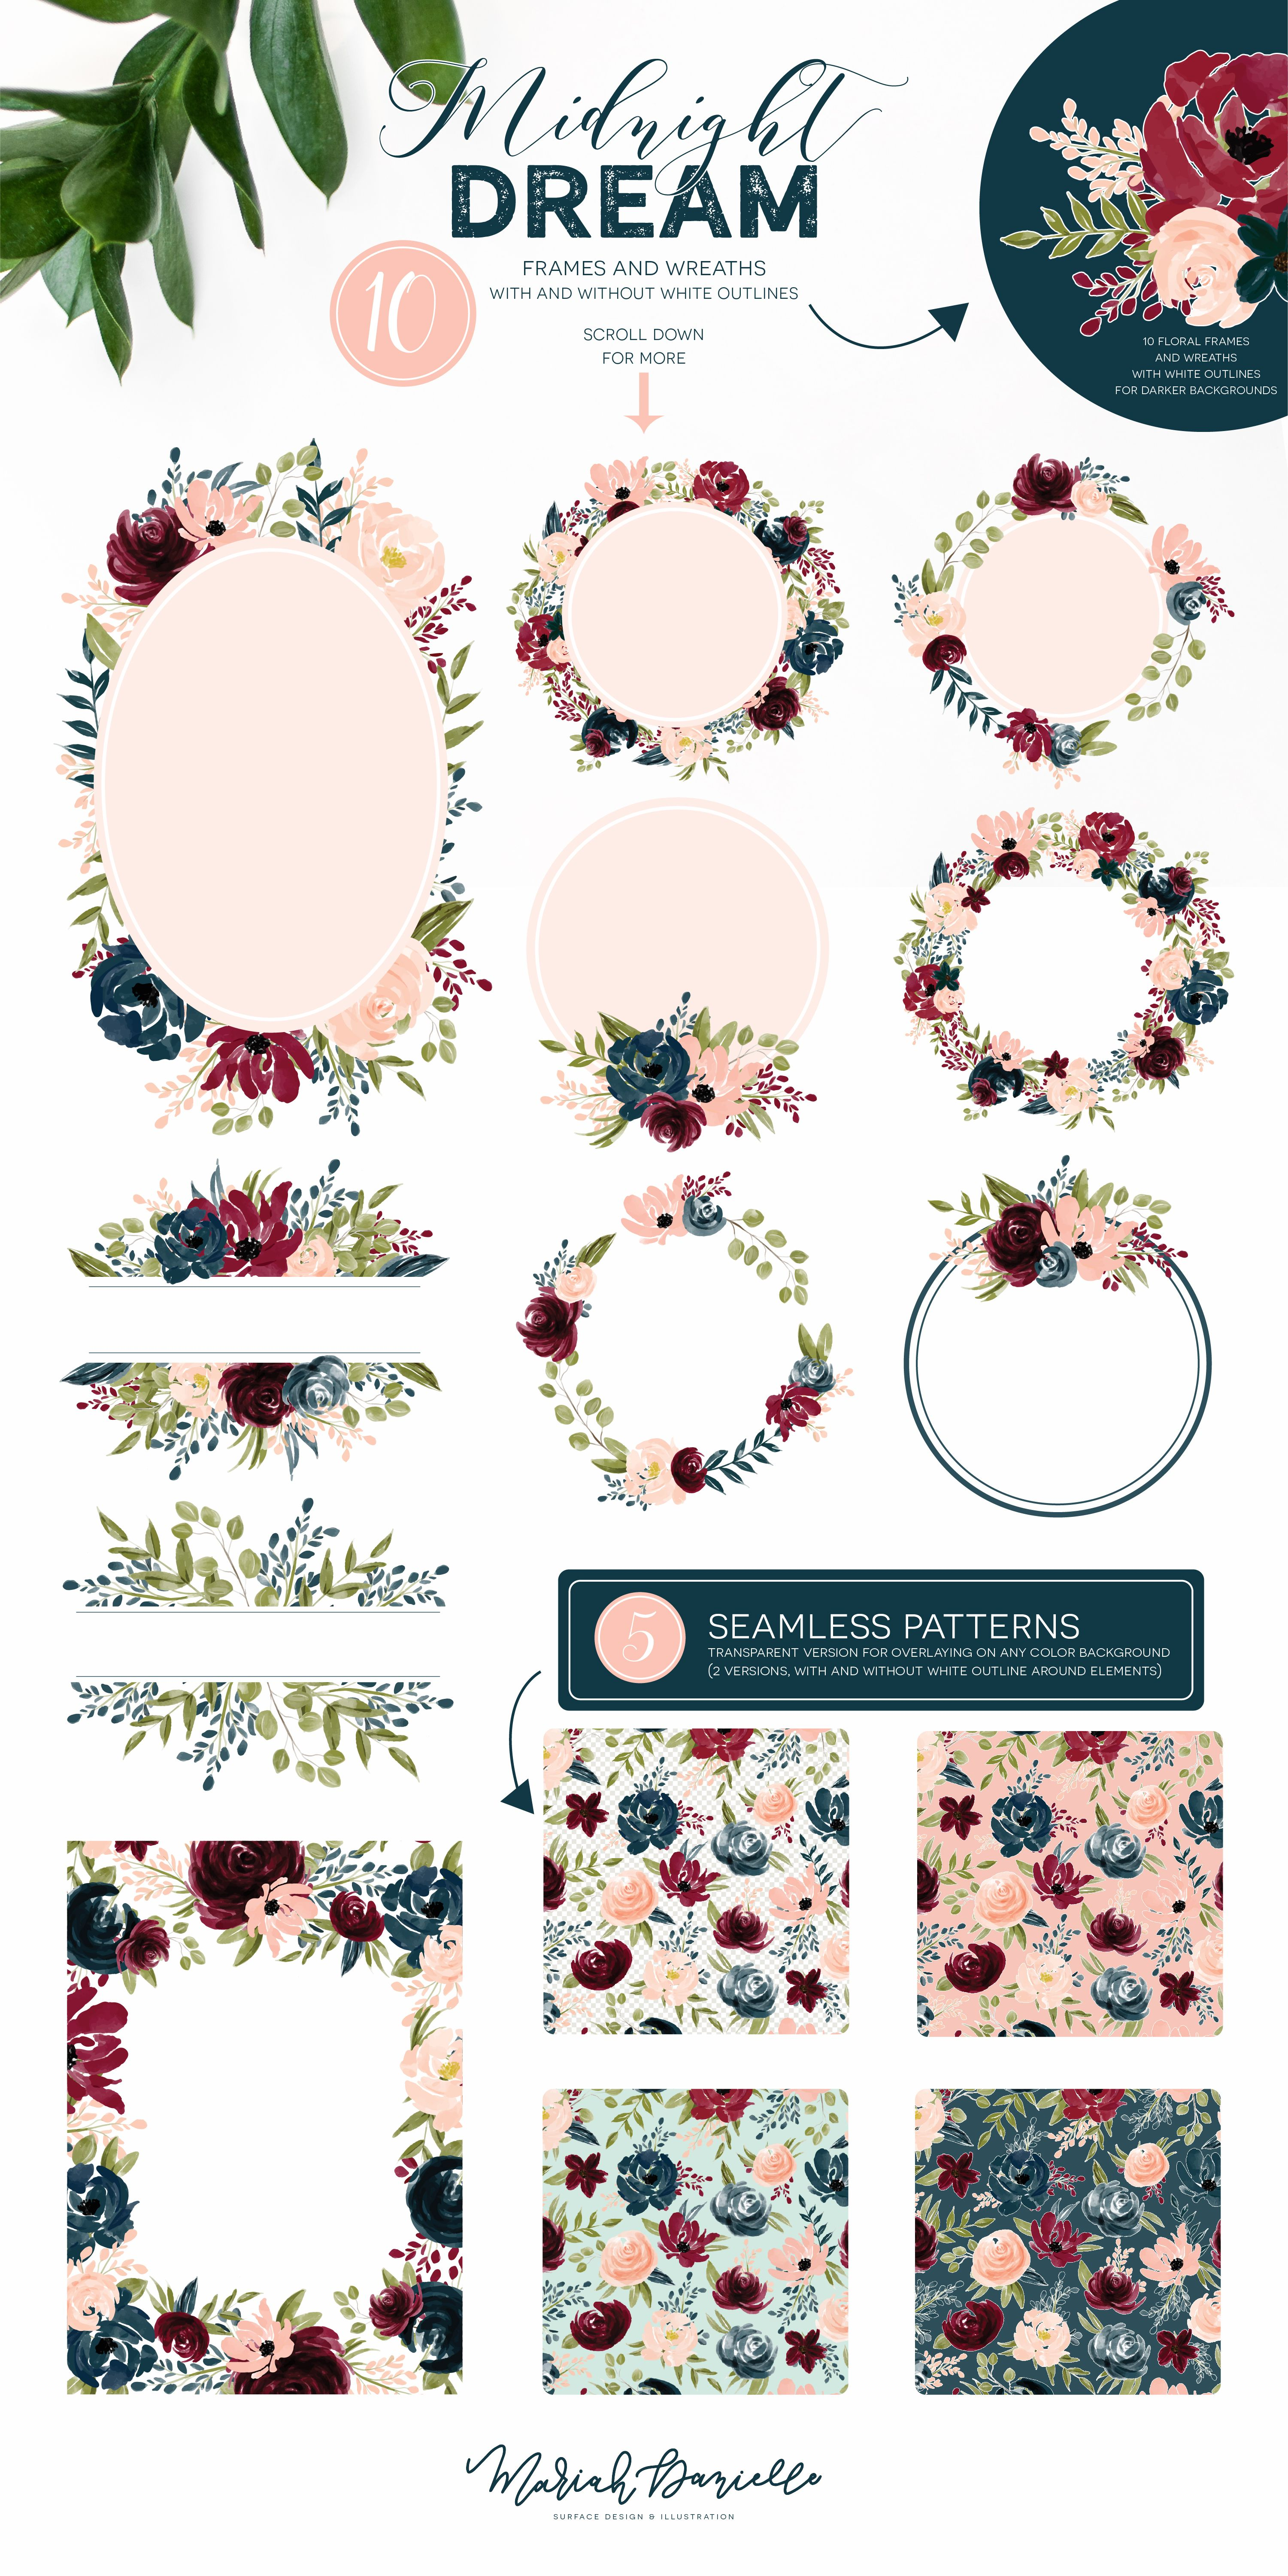 Taiga ax do-it-yourself: drawing, design features 54